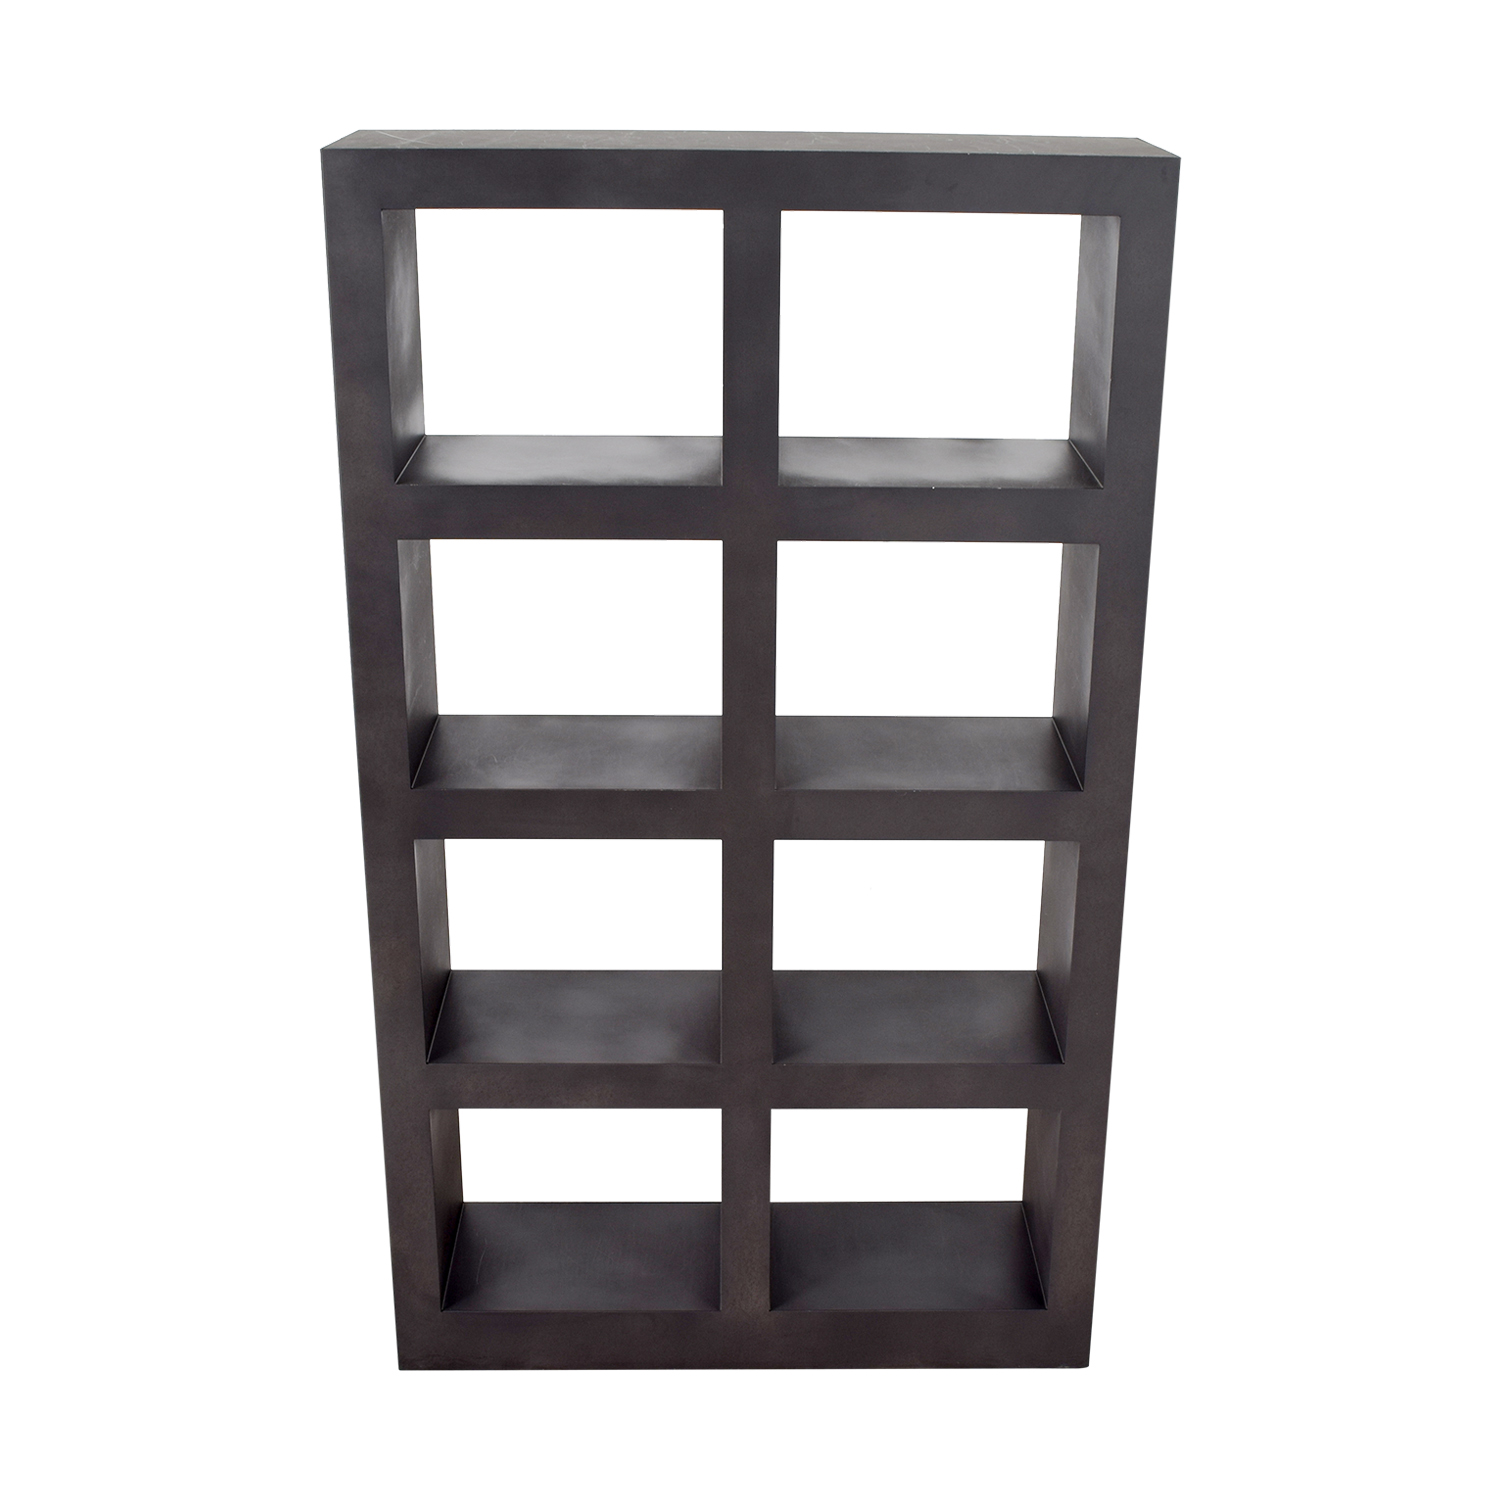 Crate & Barrel Crate & Barrel Shadow Box Bookcase dimensions